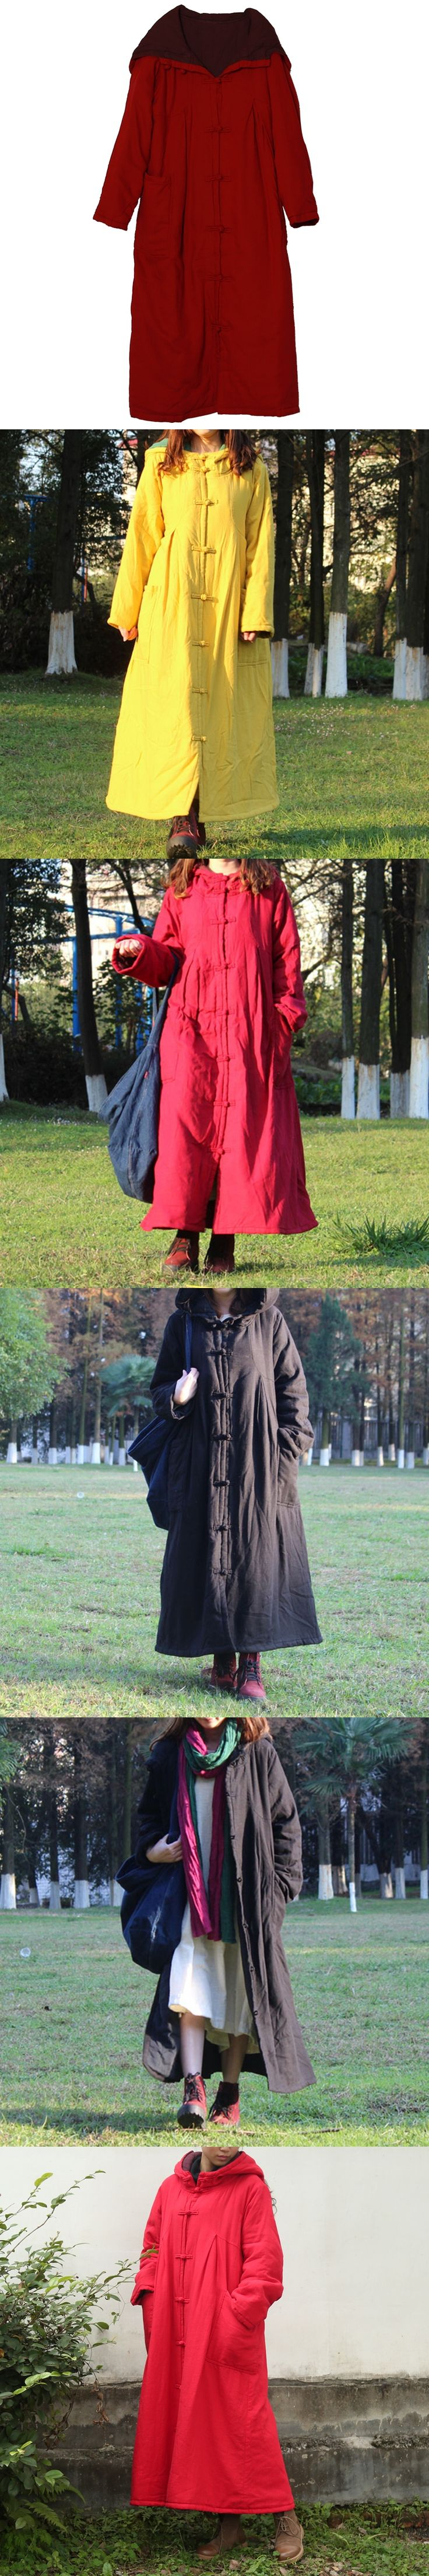 Vintage Chinese Winter Coat Slub Linen Women Hooded Long Coats Cotton Quilt Trench Coat Long Sleeve Robe Manteau Femme Abrigos